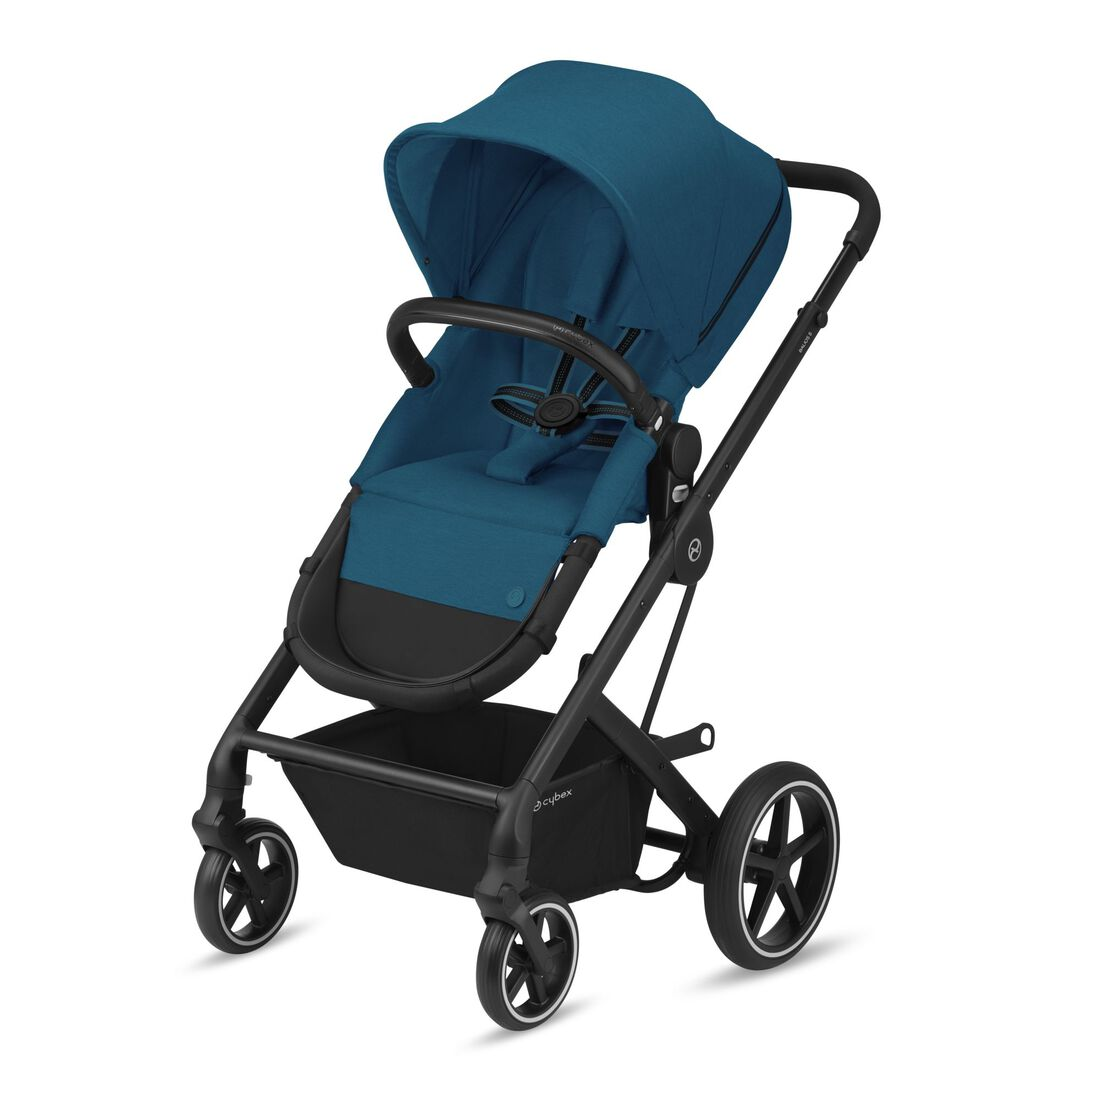 CYBEX Balios S 2-in-1 - River Blue in River Blue large image number 1